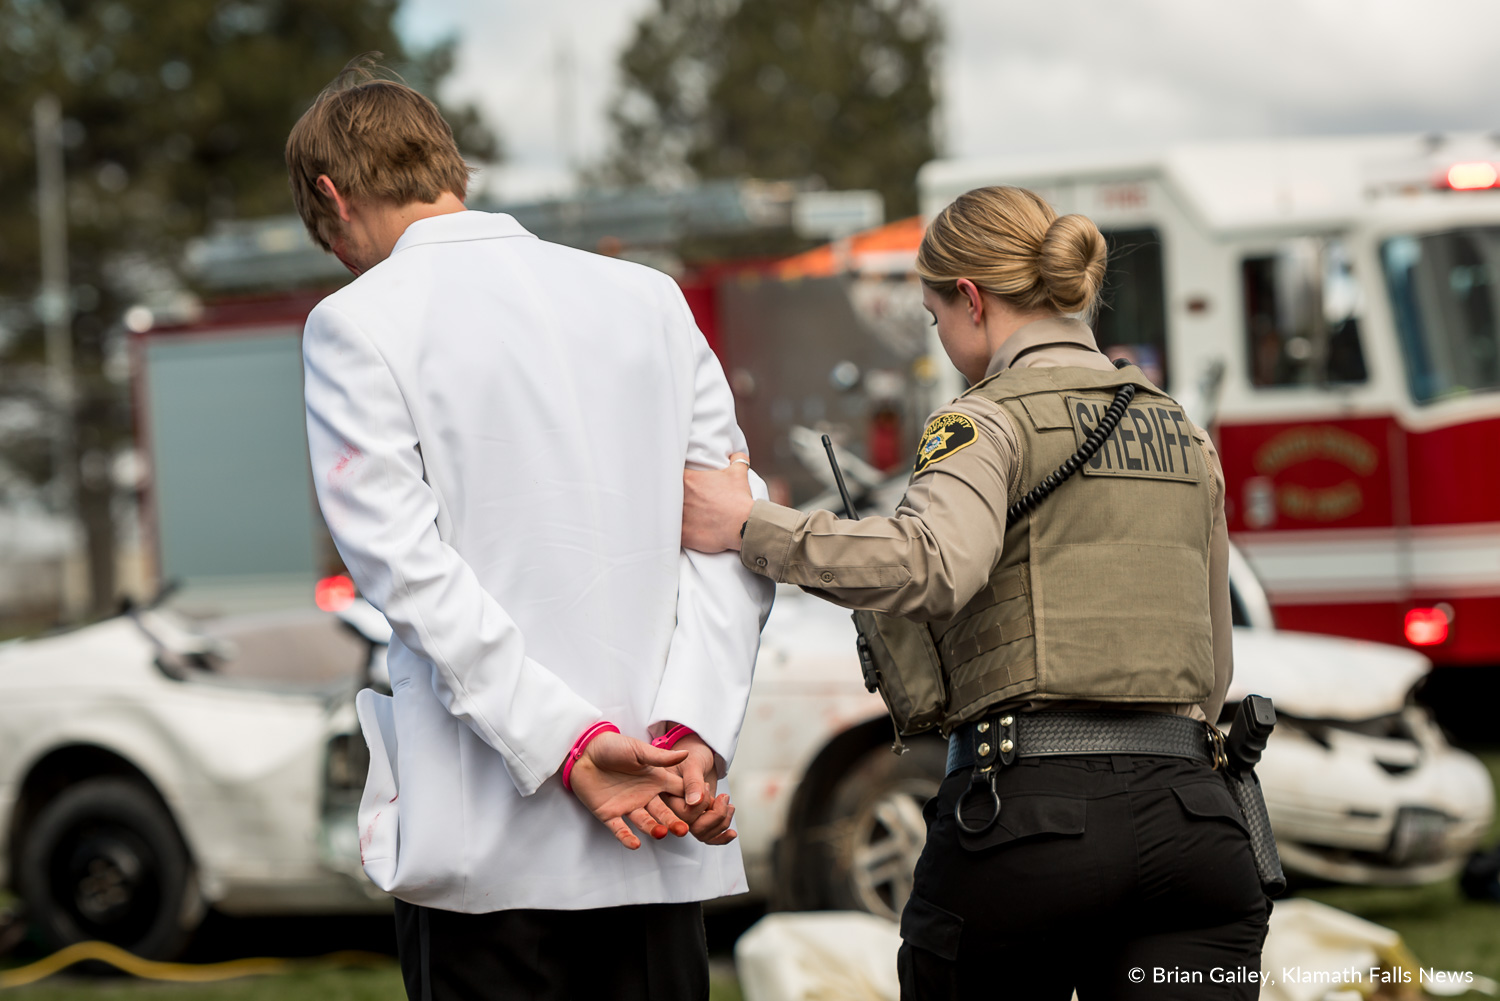 Operation Prom Night, a staged DUII car crash to teach teens the reality of drinking and driving. April 19, 2018 (Brian Gailey)